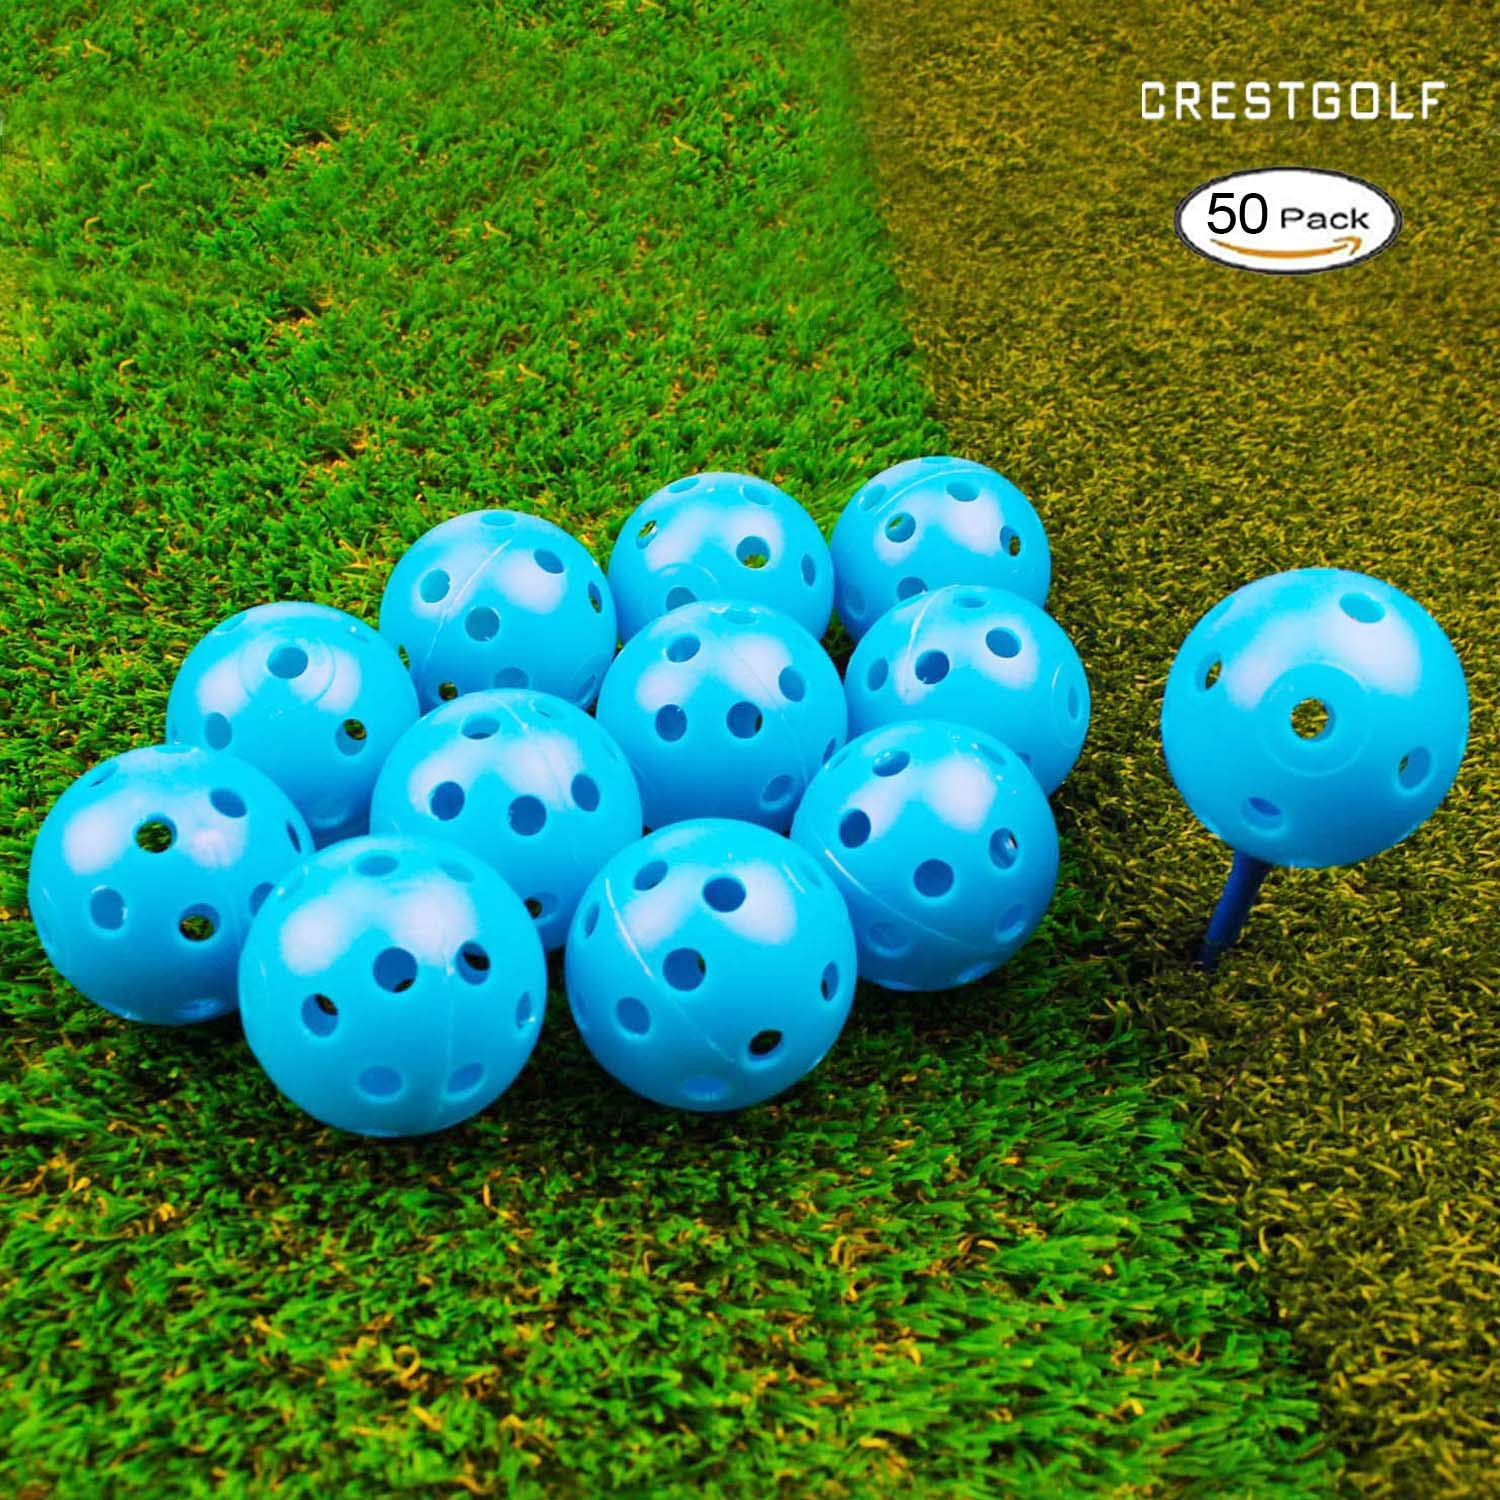 Crestgolf 12/50 Pack Plastic Golf Training Balls - Airflow Hollow 40mm Golf Balls for Driving Range, Swing Practice, Home Use,Pet Play.(Blue,50pack) by Crestgolf